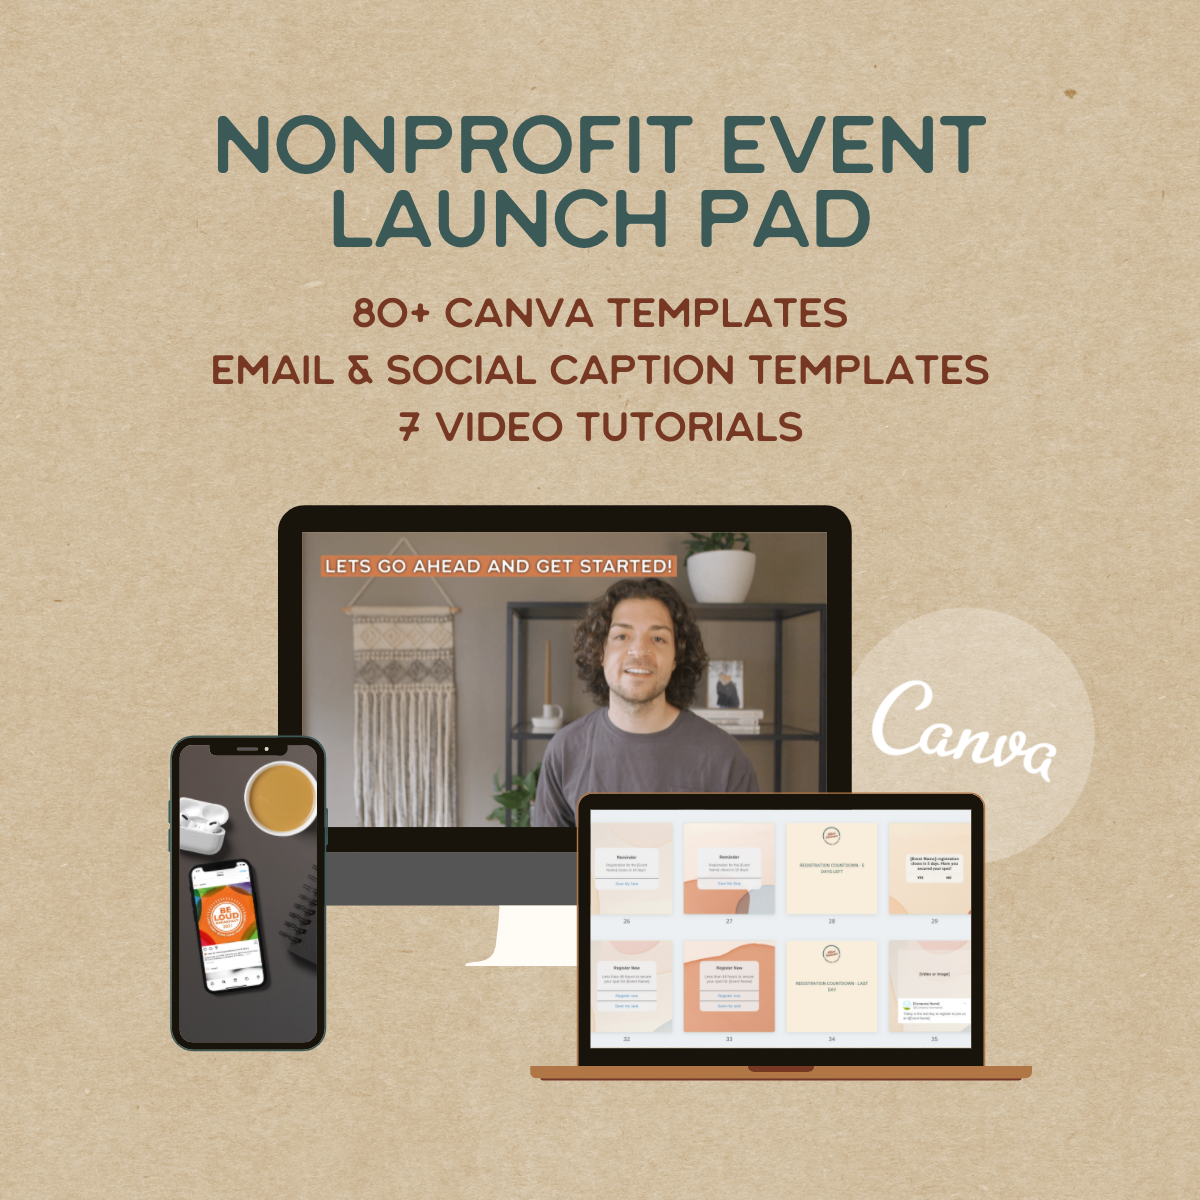 Nonprofit event launch pad. 80+ Canva templates, email and social caption templates, and 7 video tutorials.